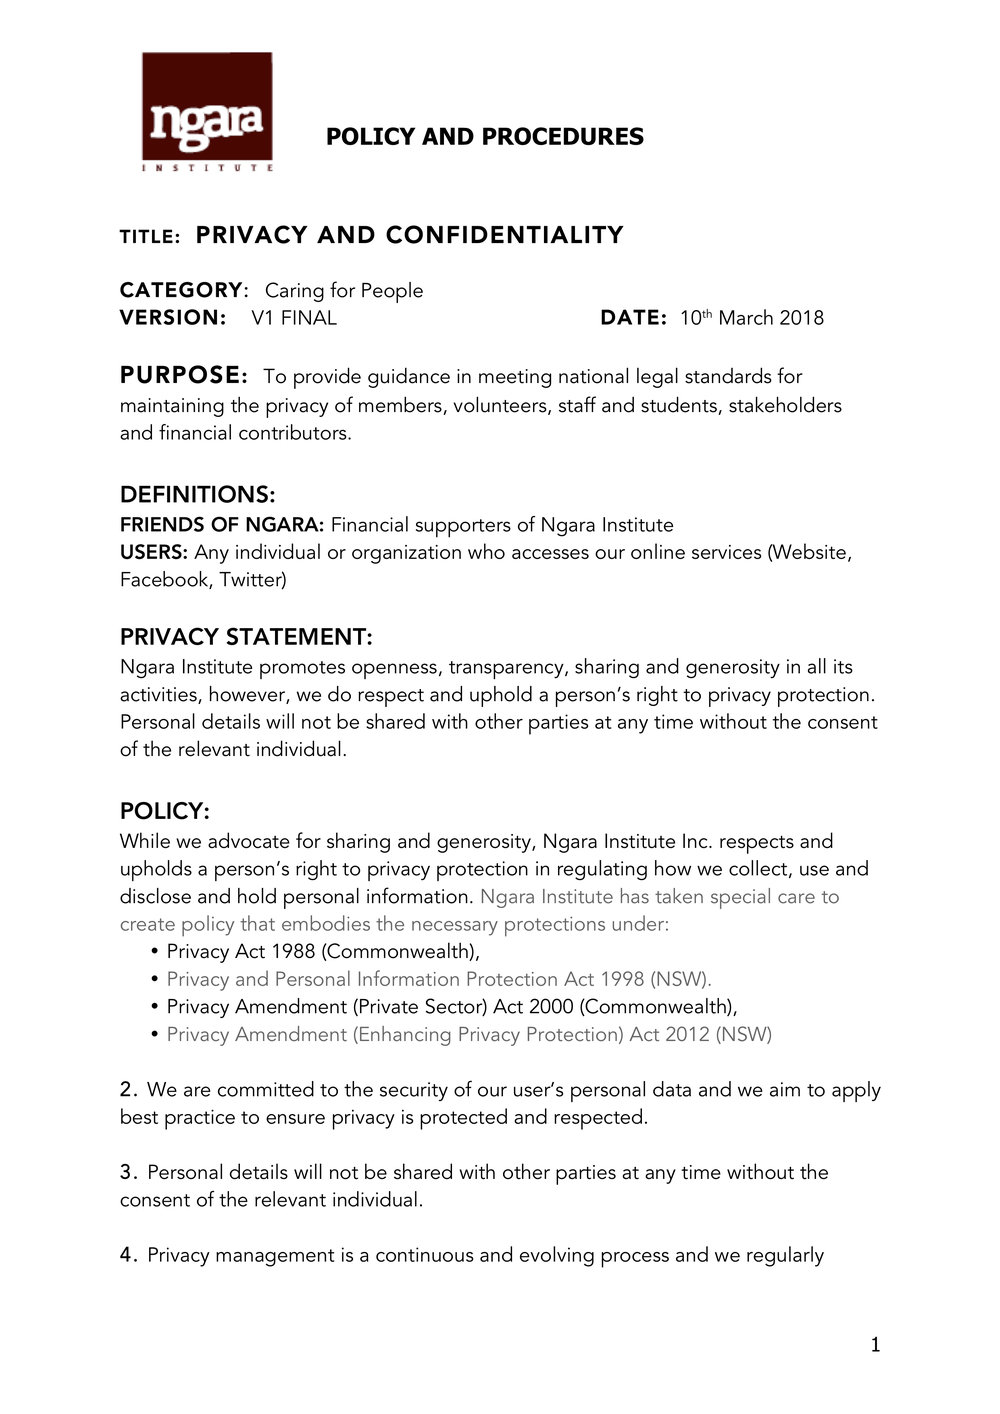 Ngara Privacy and Confidentially Policy V1 final.jpg